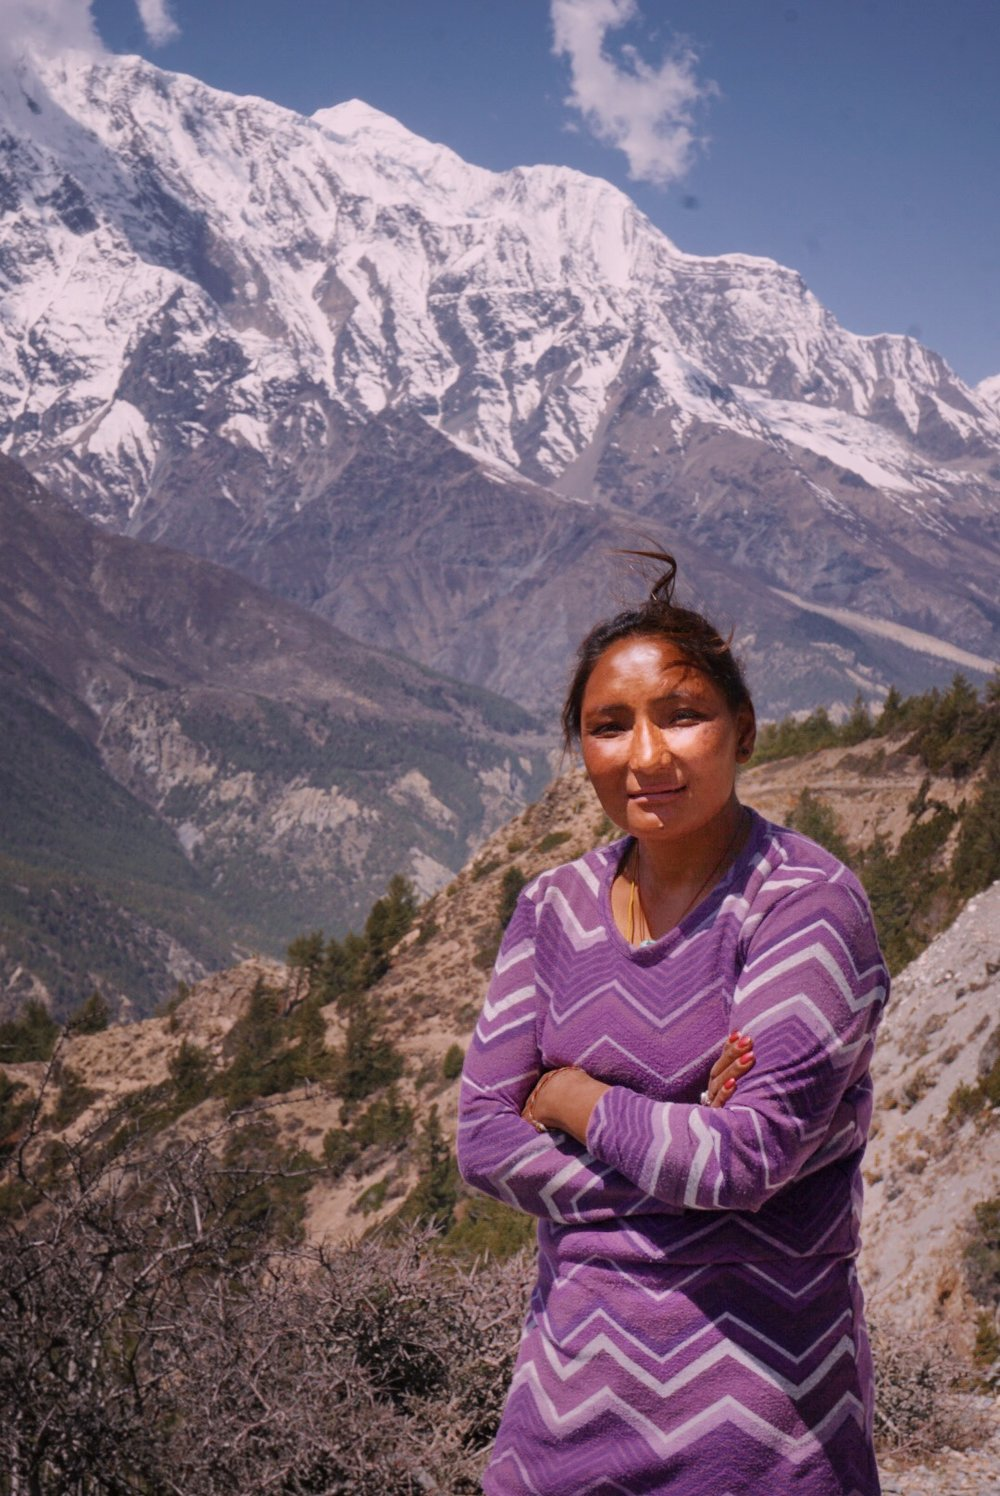 This is Chunda. Each day she packs a bag of drinks and snacks, hikes up to 12,500 ft, and sets up her shop-in-a-bag along the trail, opposite views of Annapurna II and IV.